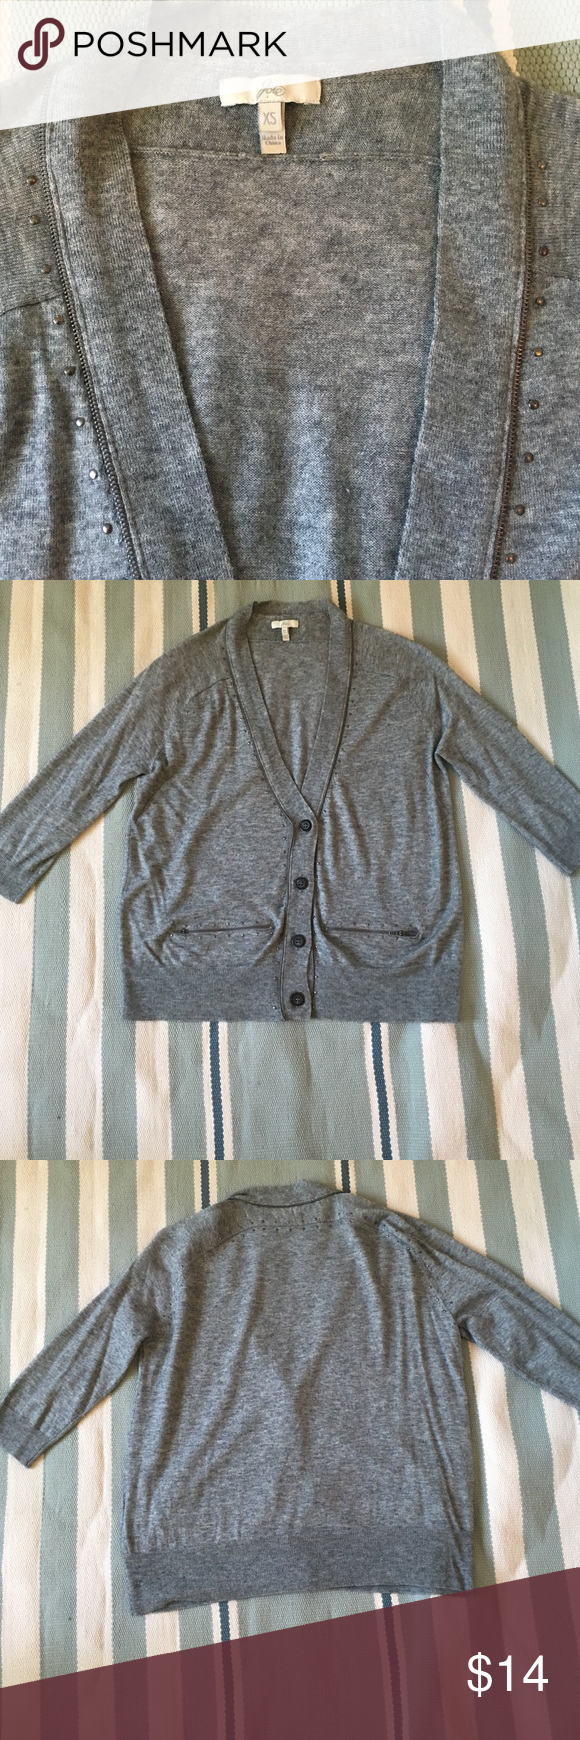 Joie grey 3/4 sleeve sweater w zip detail. XS Joie grey 3/4 sleeve sweater w zip detail. XS Gorgeous with silk camisole and skinny jeans. Great condition. No holes or snags. Joie Sweaters